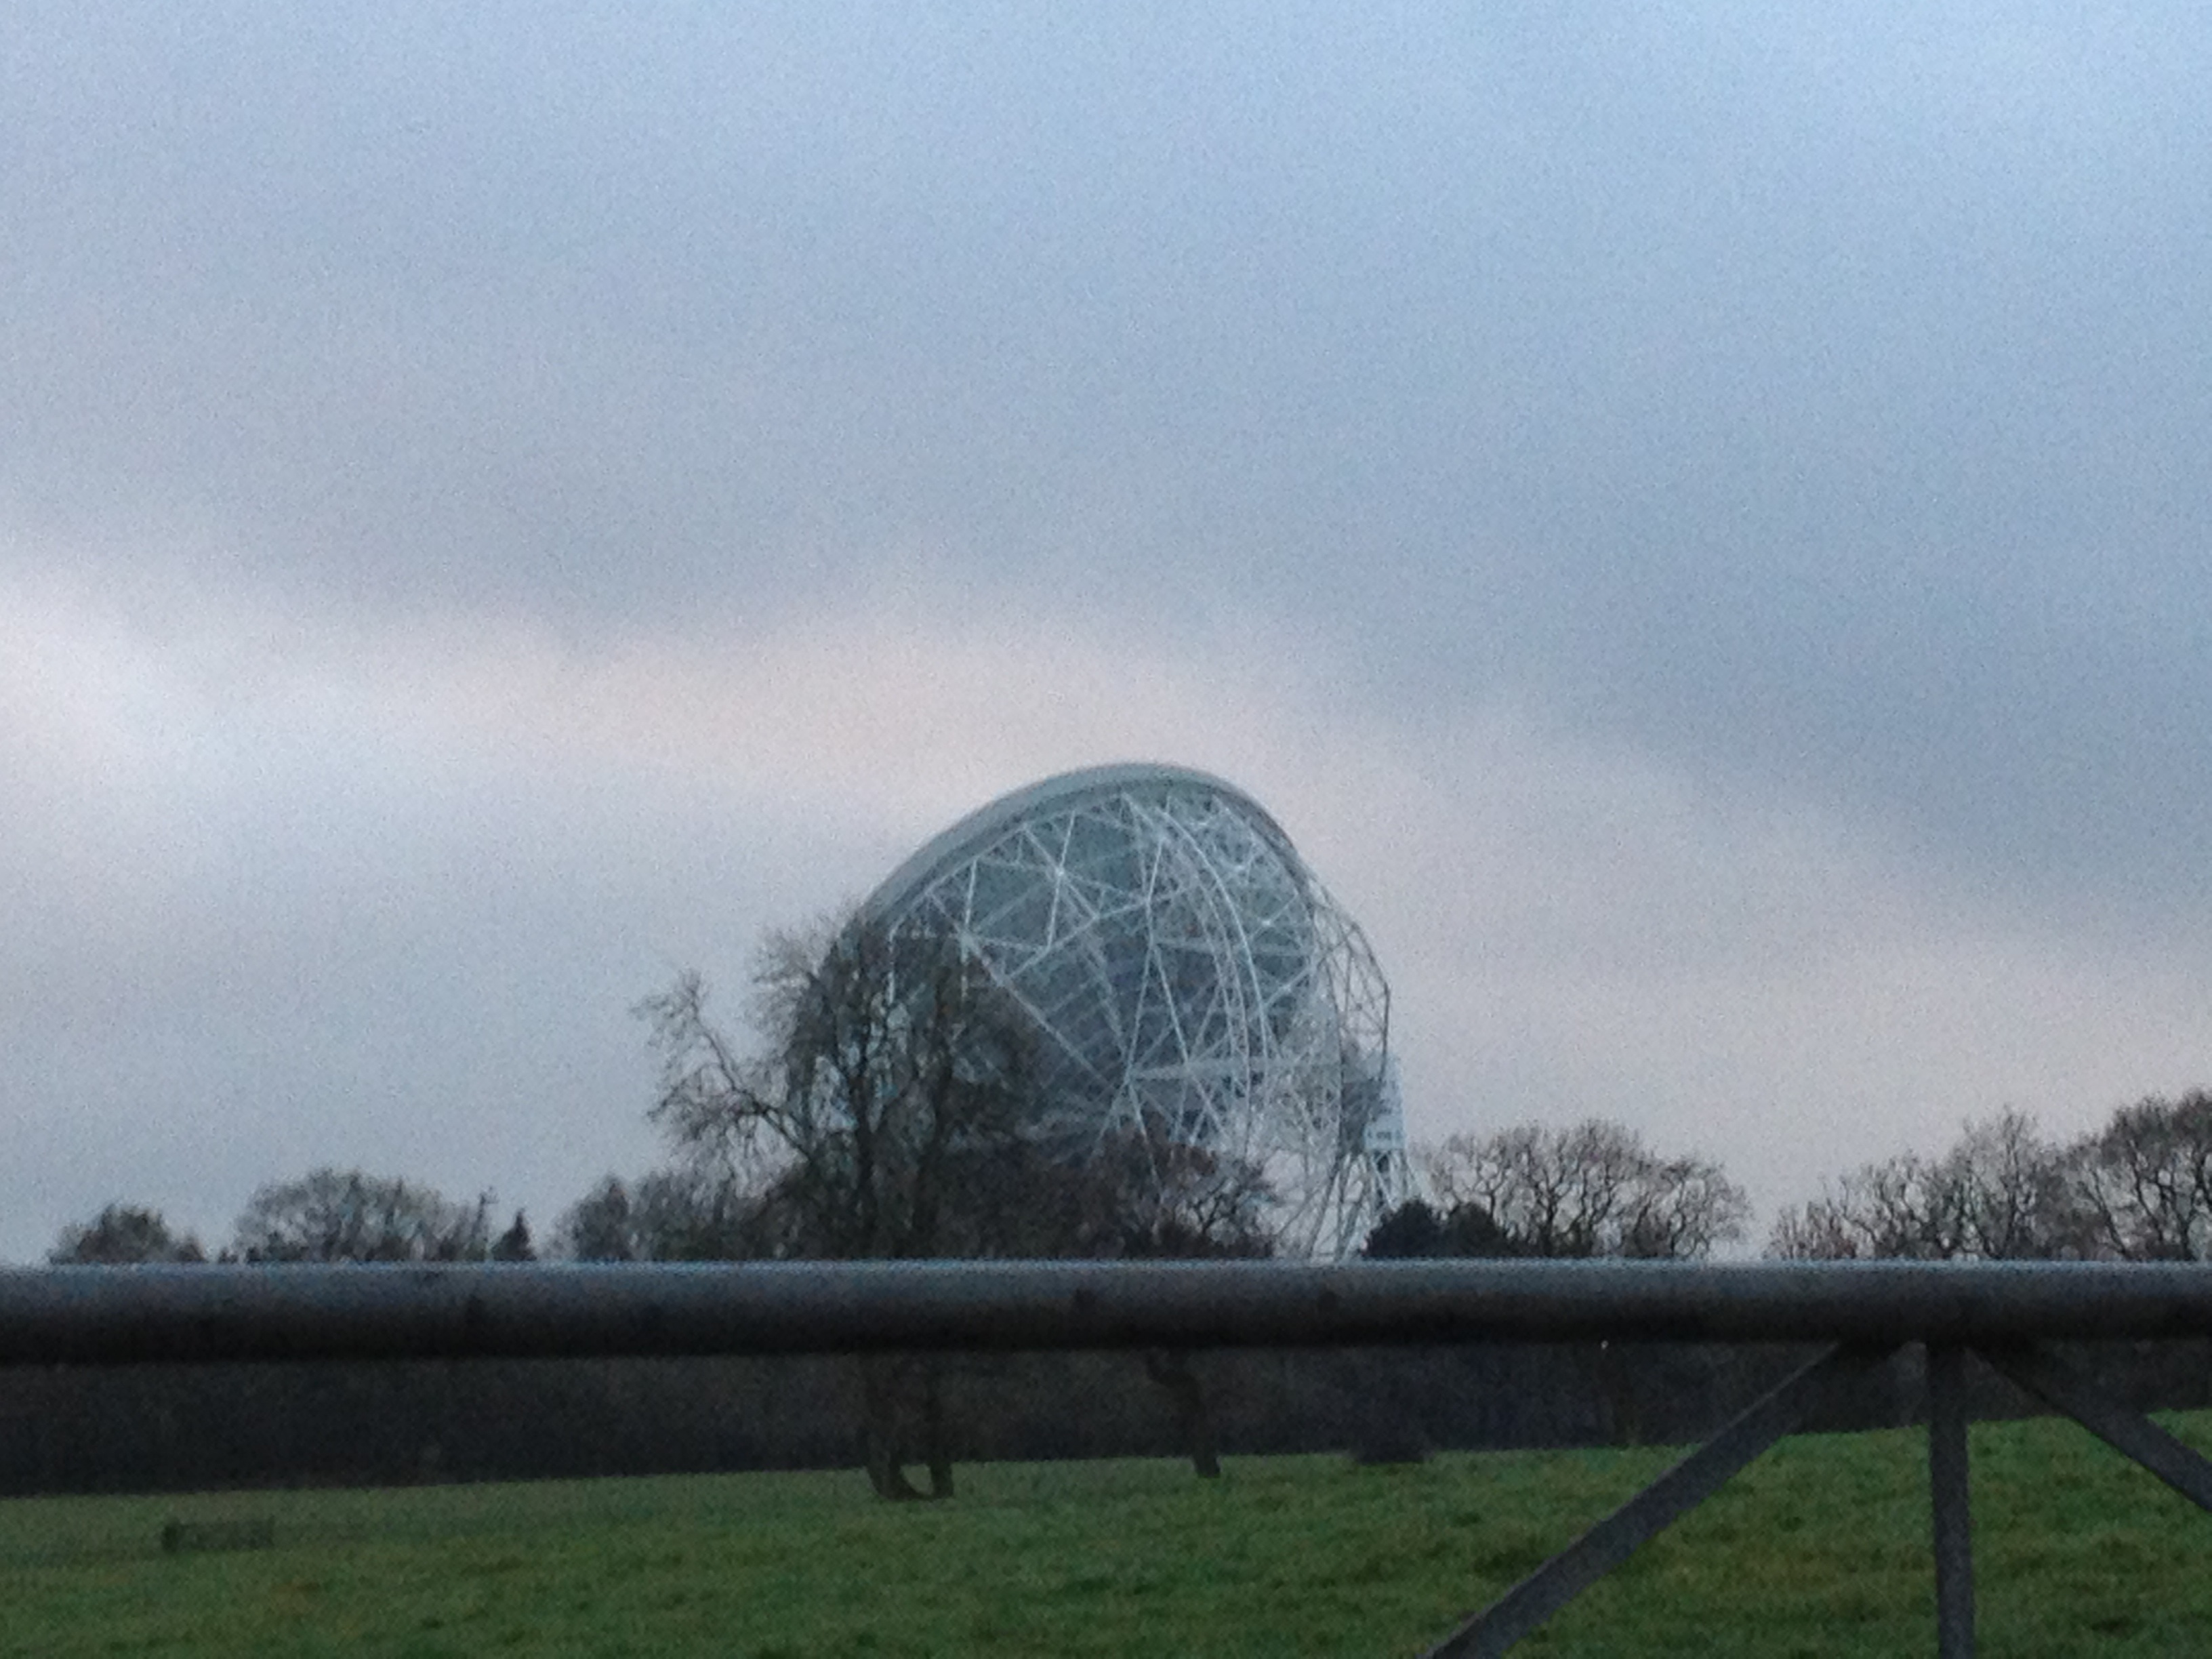 The Lovell Telescope (facing away from the camera) at Jodrell Bank. Taken as arriving at BBC Stargazing Live 2013, Wednesday 9th January 2013